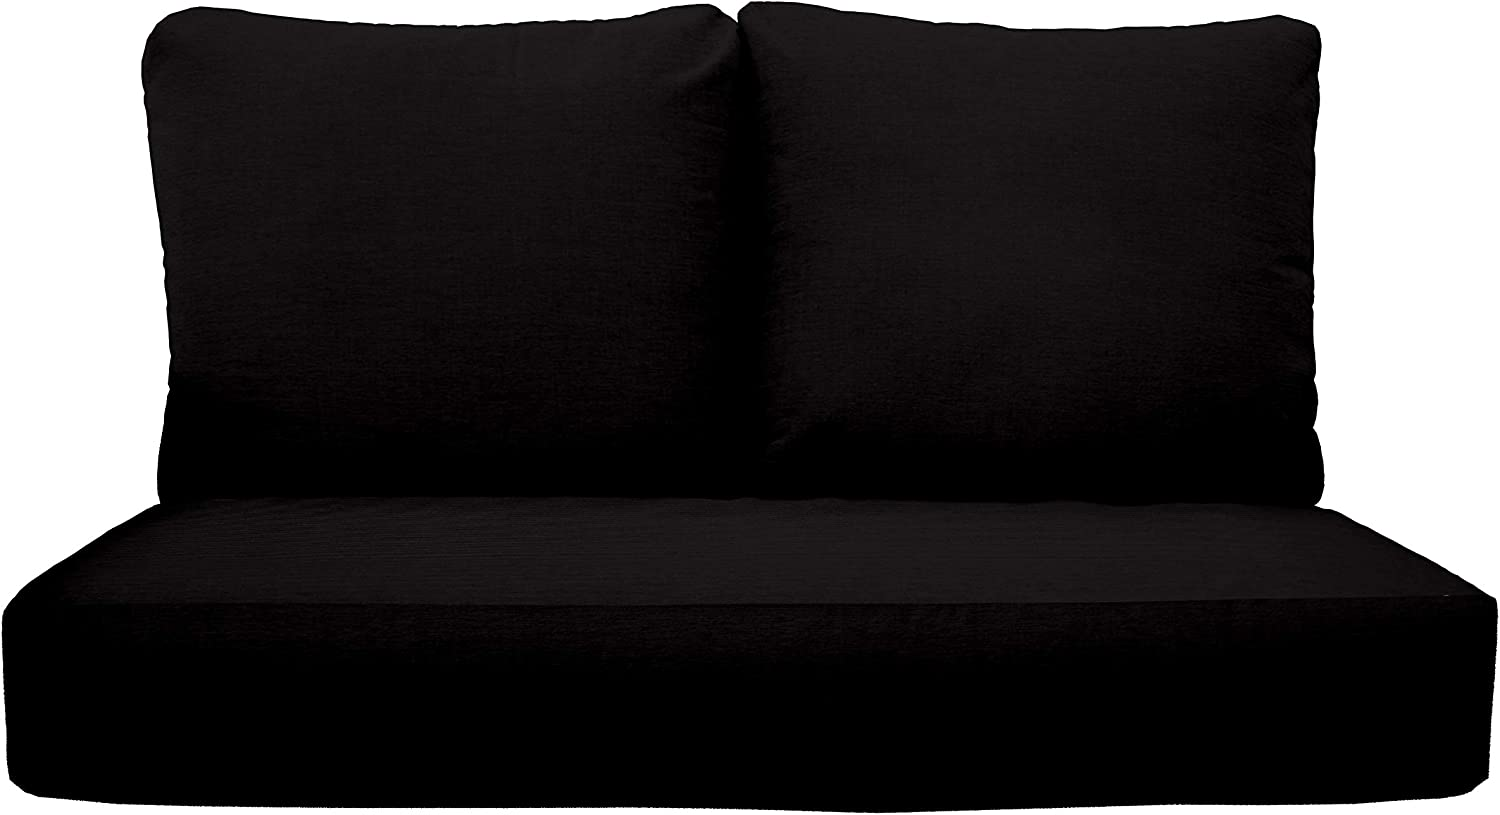 """RSH Décor Indoor Outdoor Deep Seating Loveseat Cushion Set, 1- 46"""" x 26"""" x 5"""" Seat and 2- 25"""" x 21"""" Backs, Choose Color (Black)"""